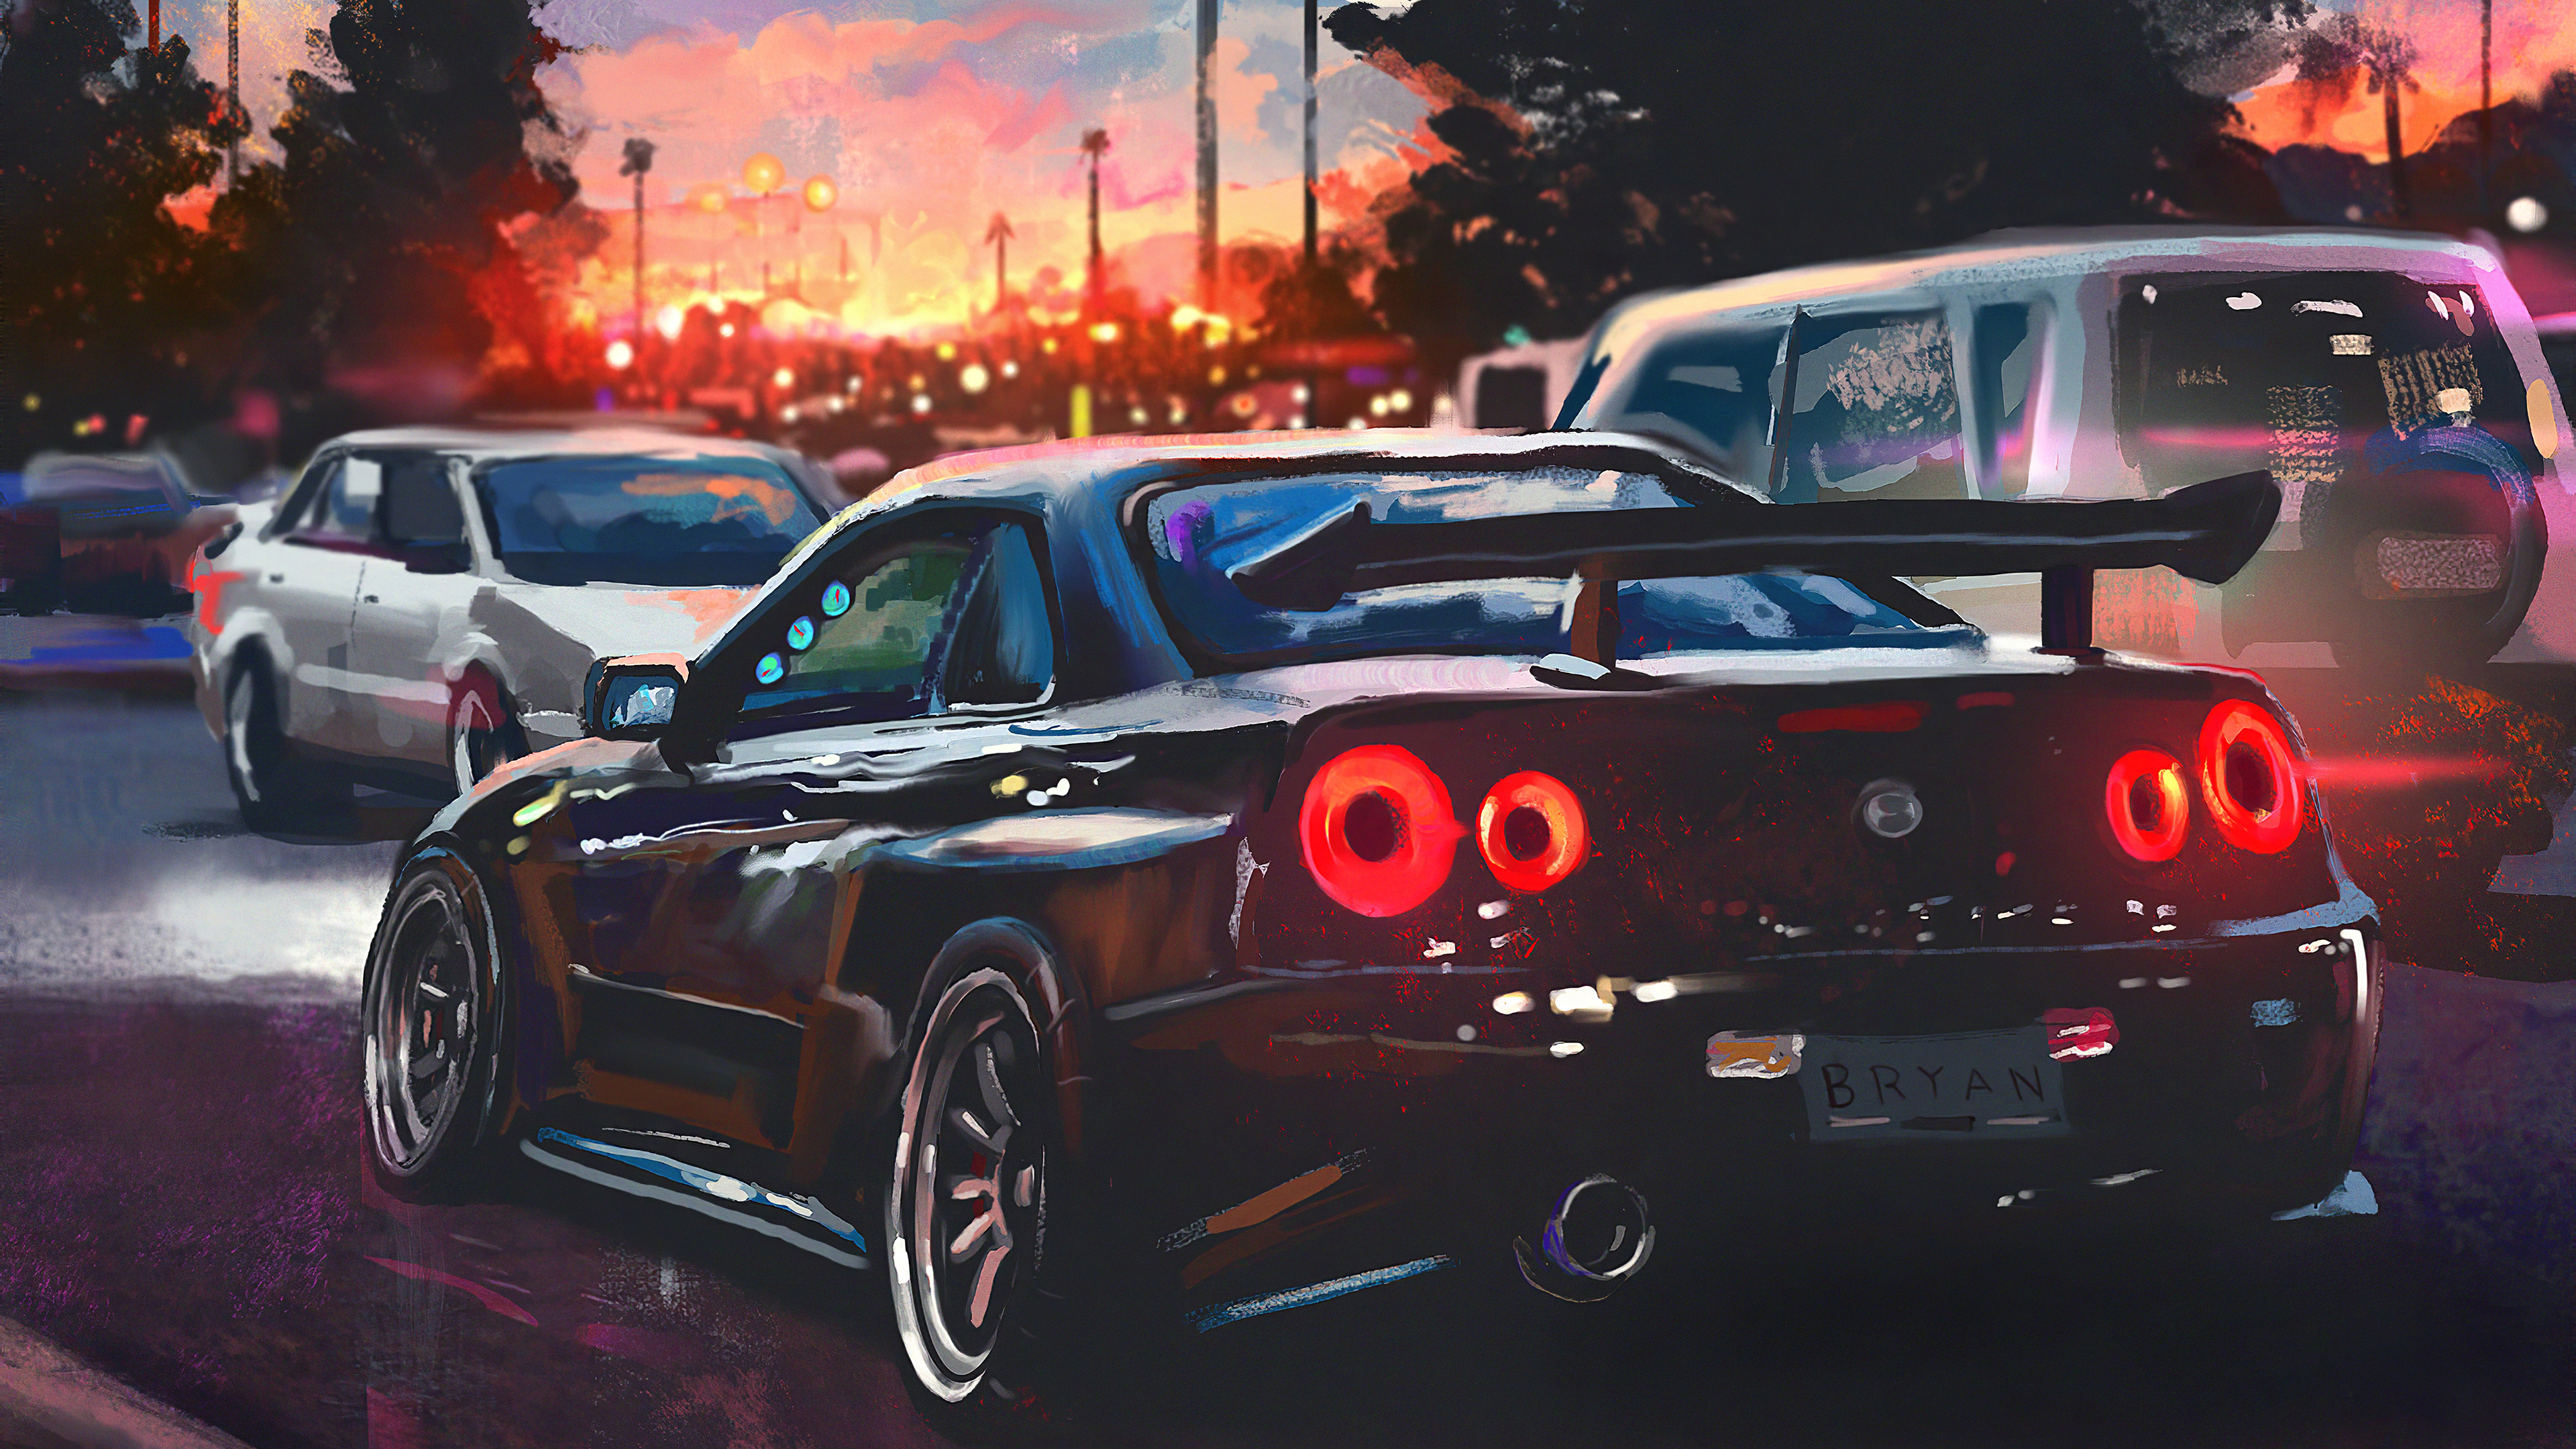 Nissan Skyline Painting Art 4k Hd Cars 4k Wallpapers Images Backgrounds Photos And Pictures